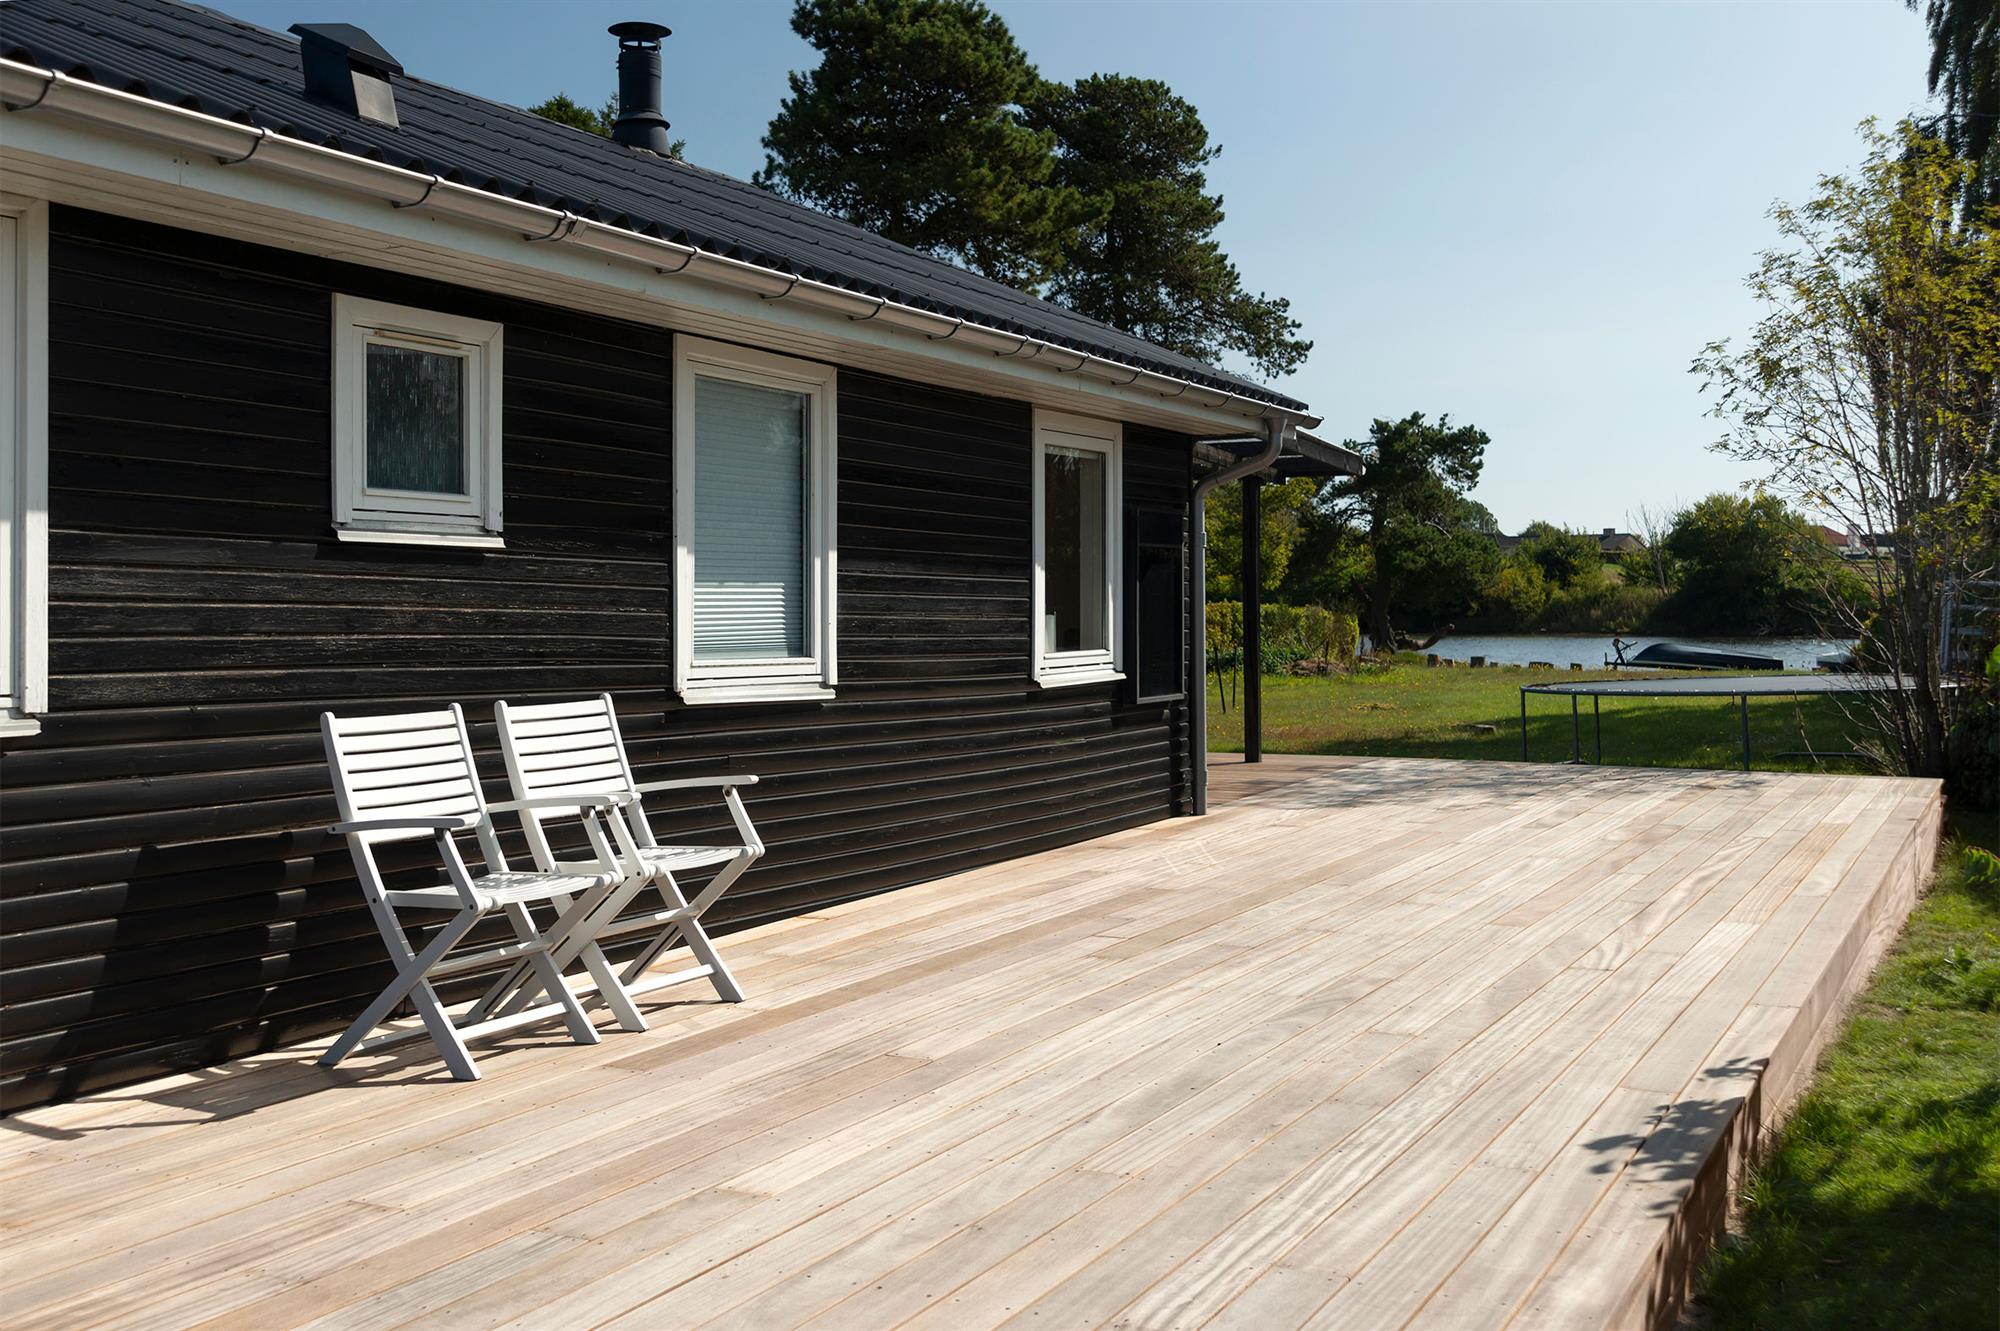 Picture of: Bangkirai Terrasse Inspiration Froslev Trae A S